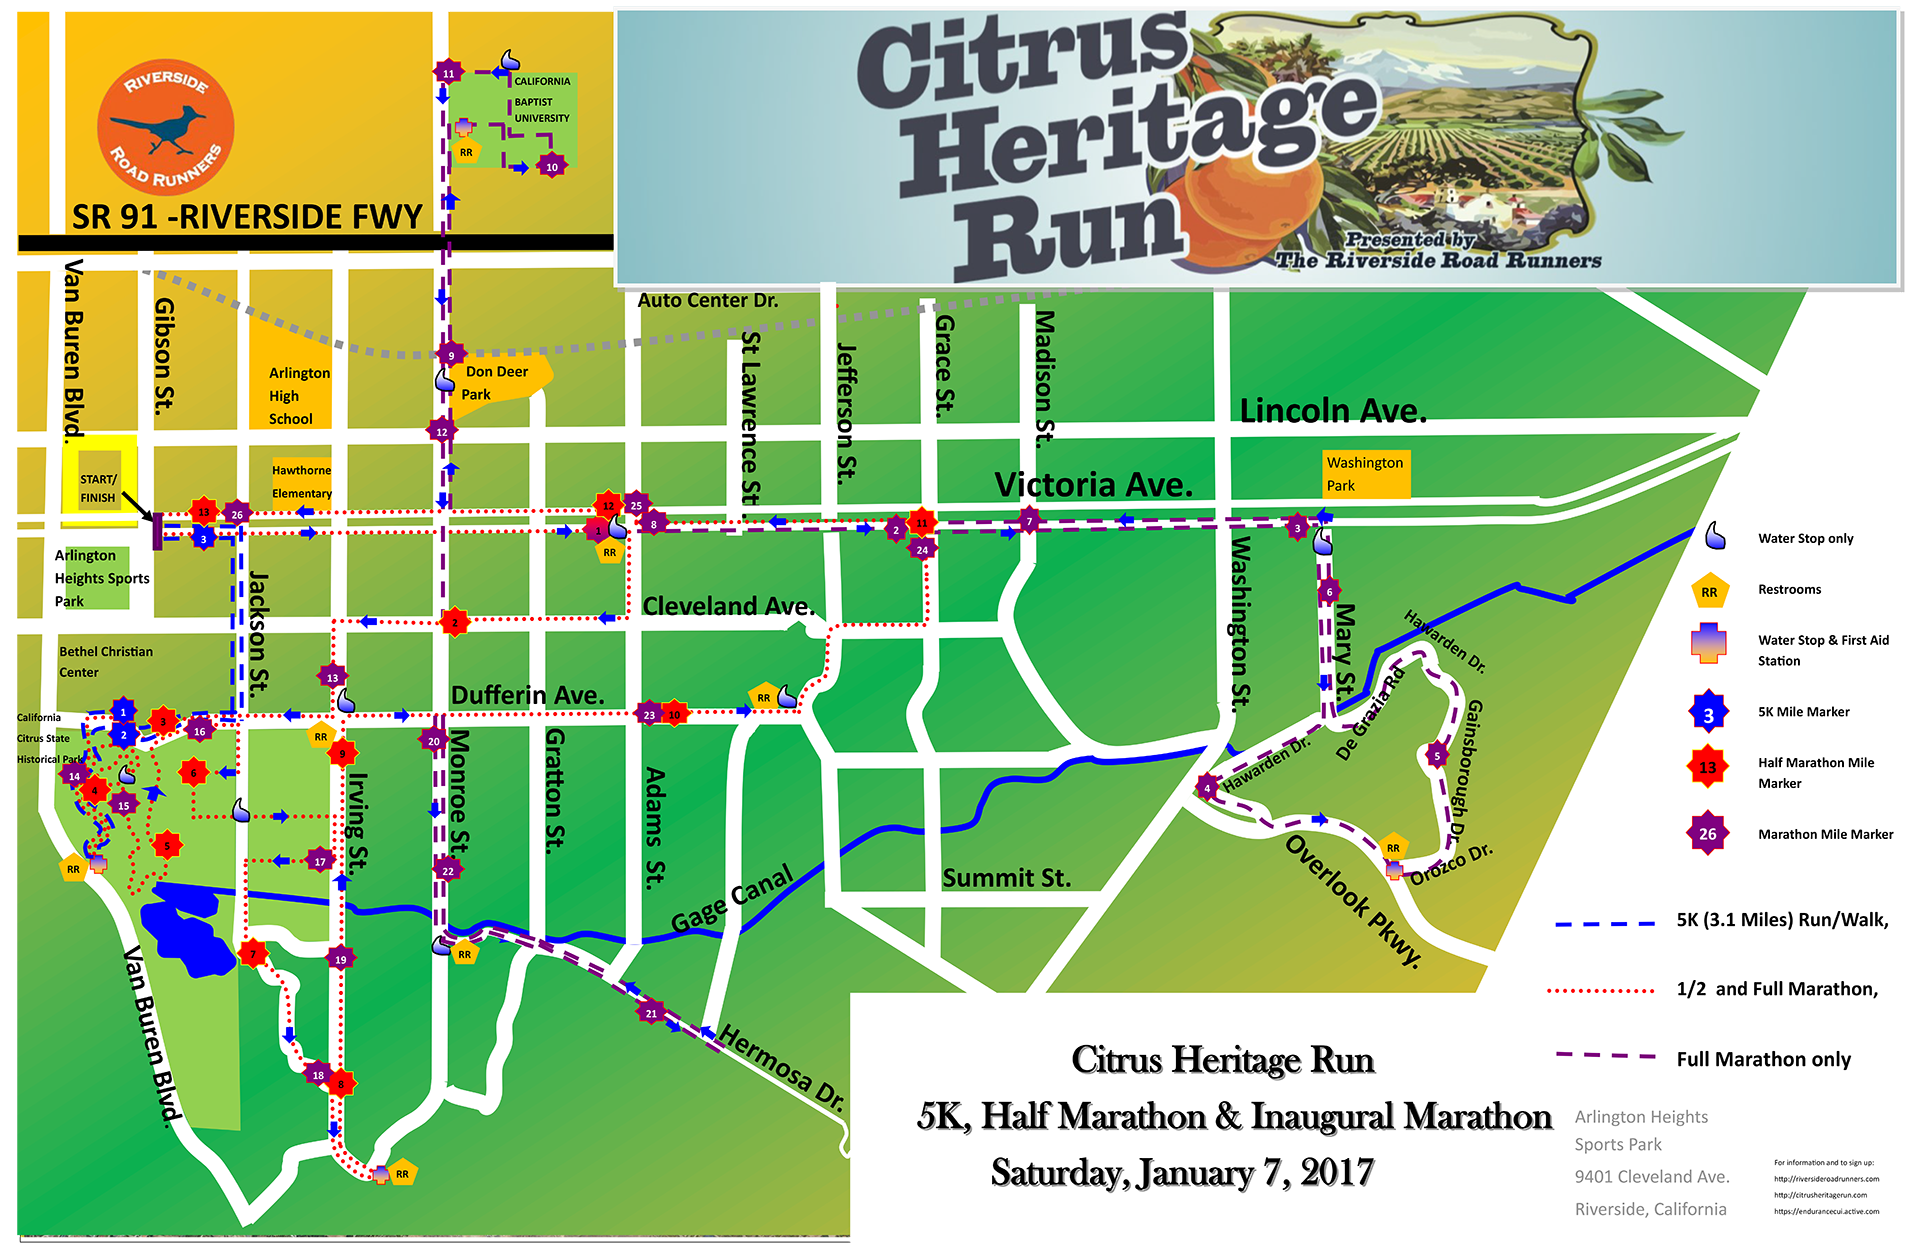 Citrus Heritage Run 2016 Course Map